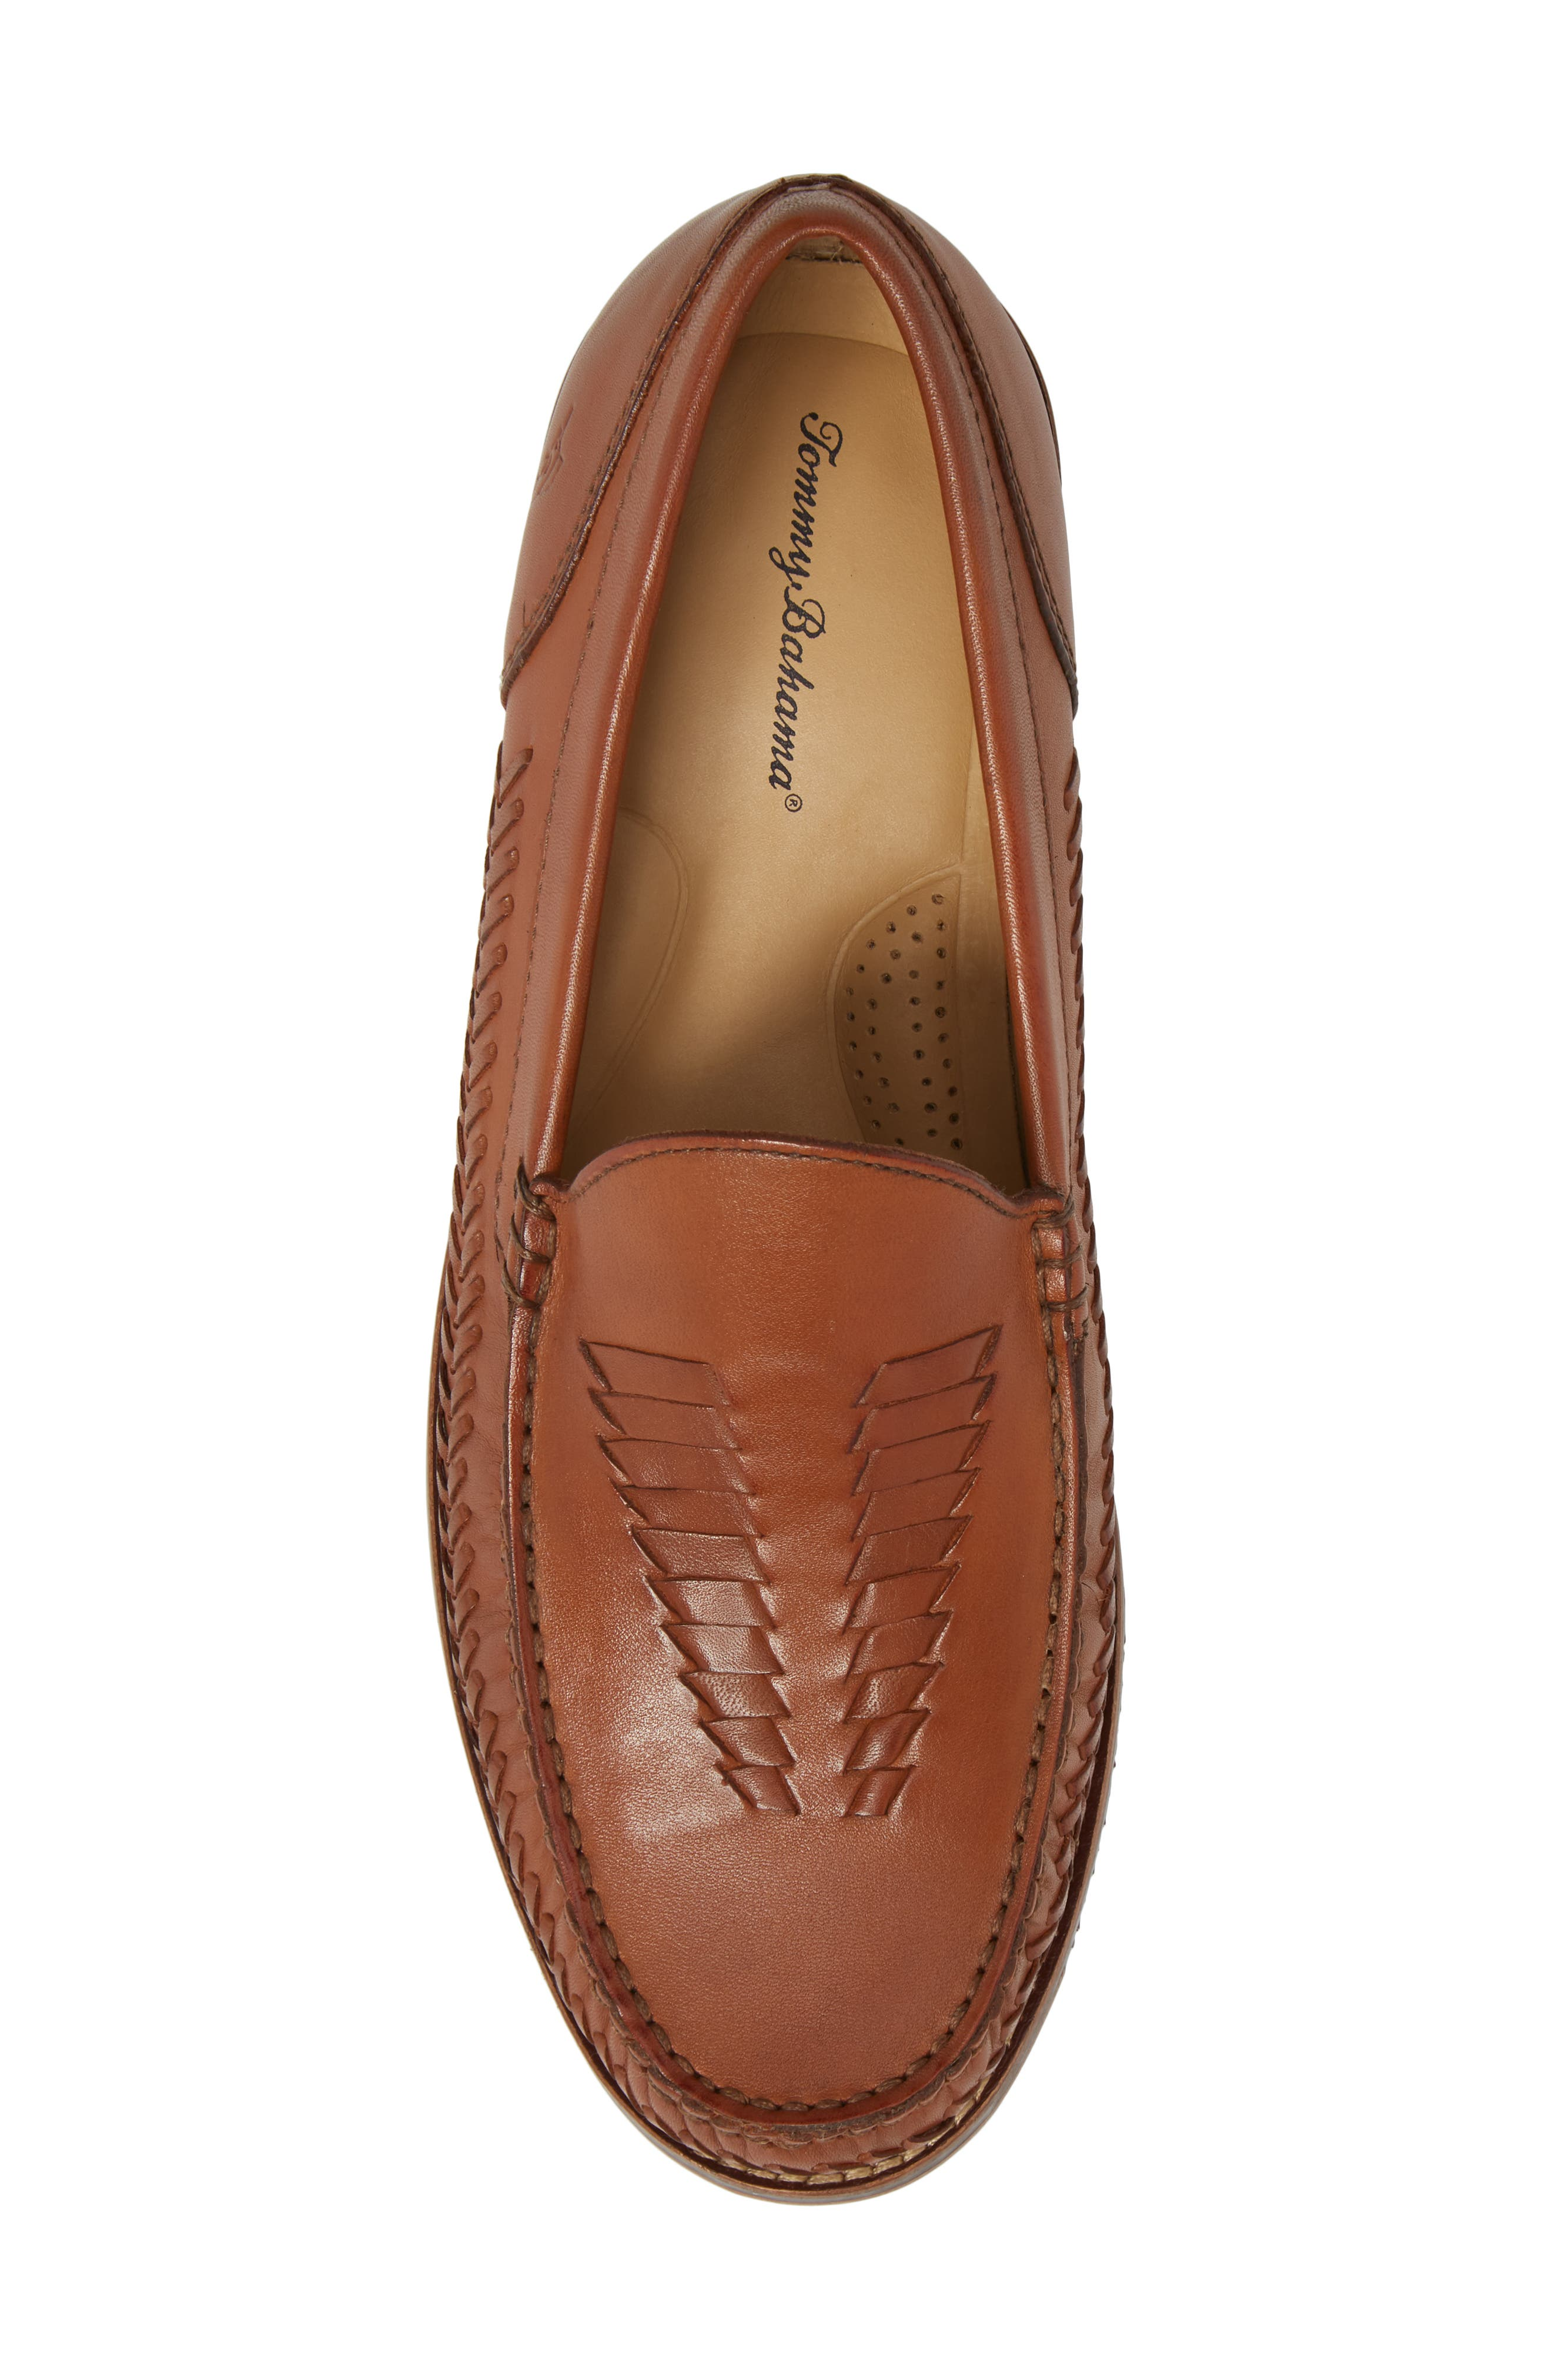 Hasslington Woven Venetian Loafer,                             Alternate thumbnail 5, color,                             TAN LEATHER